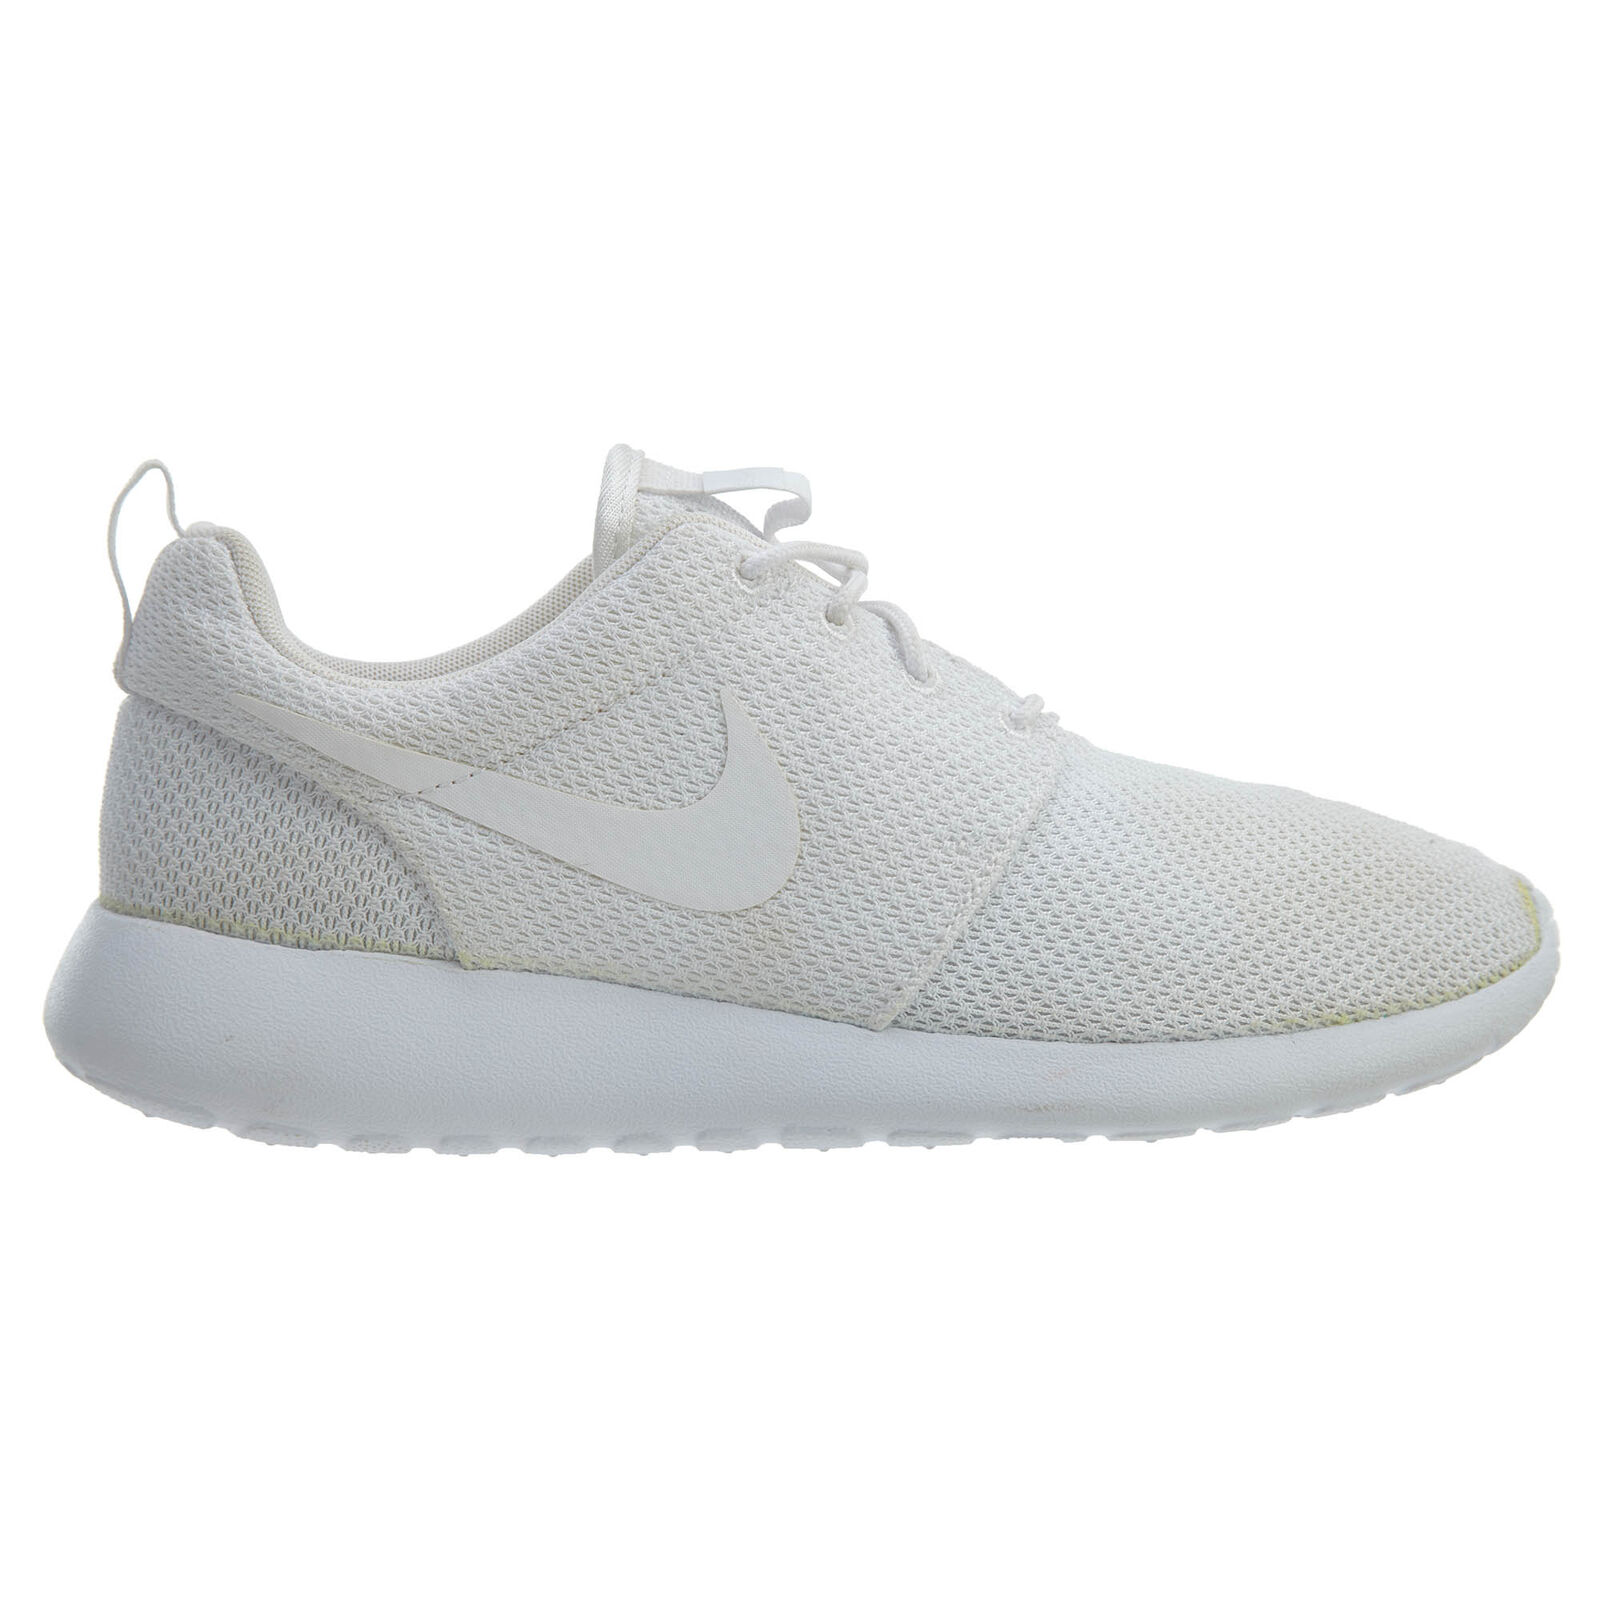 Nike Roshe One Mens 511881-112 All All All White Mesh Athletic Running shoes Size 8 0aca1a